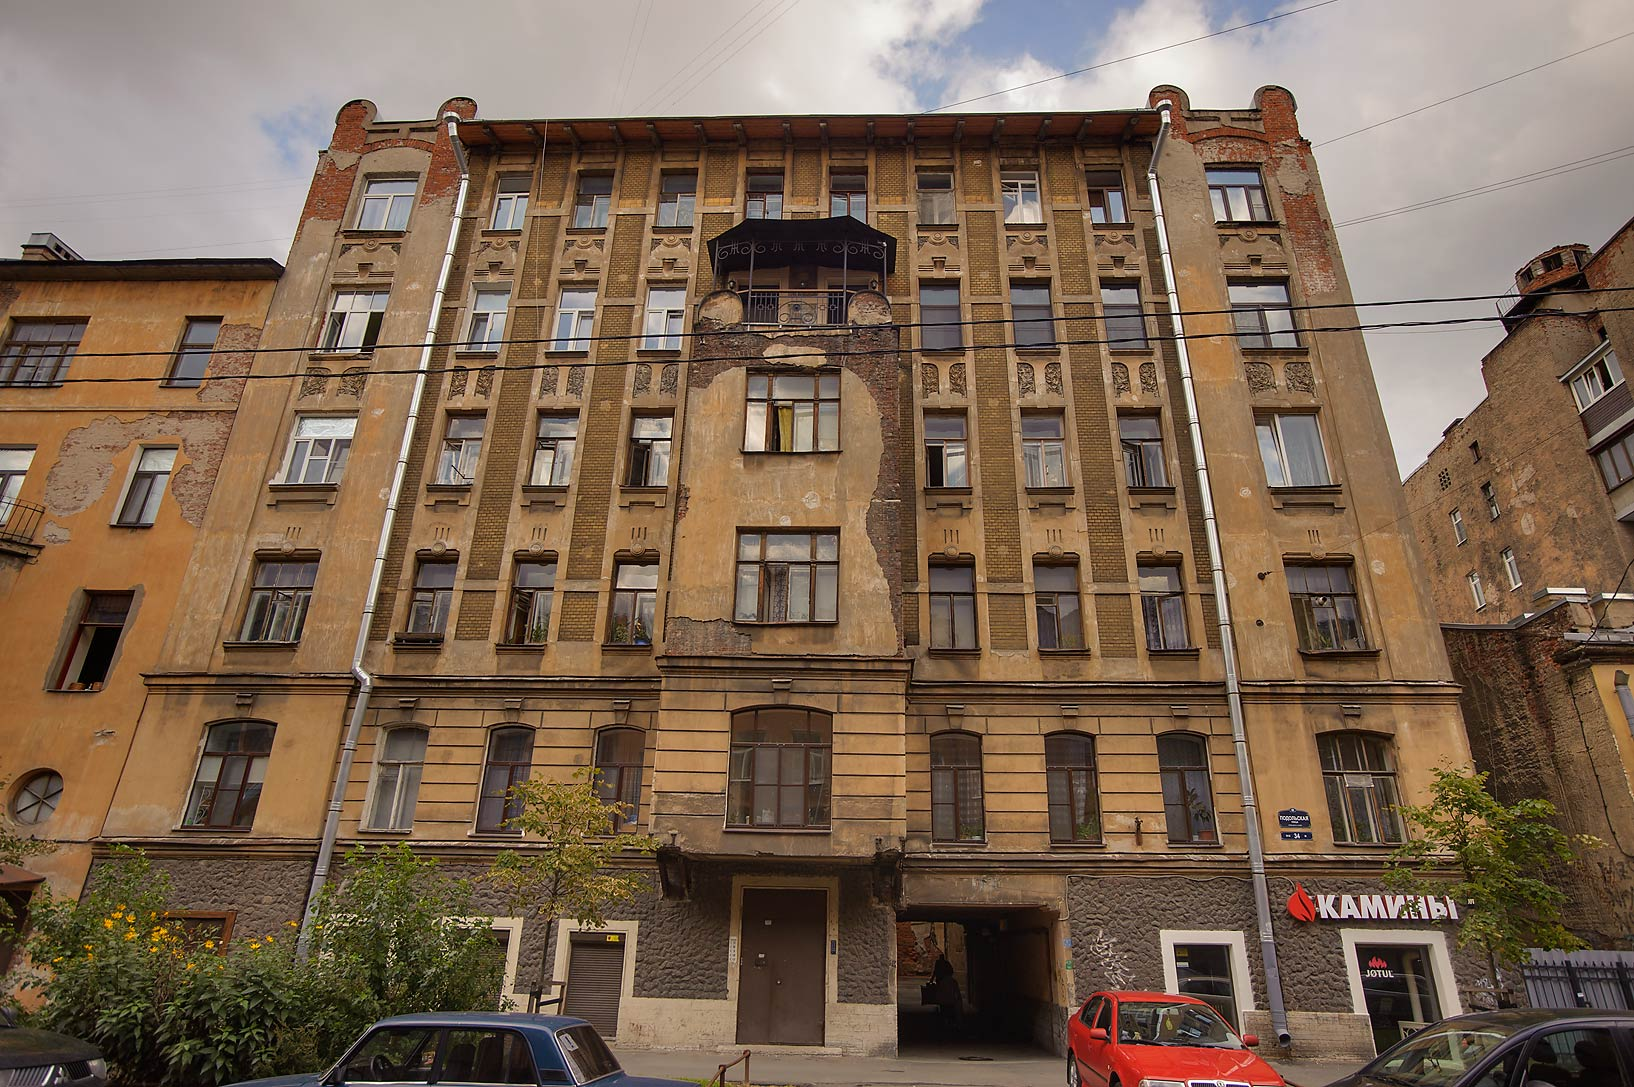 P. F. Panteleev Apartment House (1903) at 34...Train Station. Petersburg, Russia